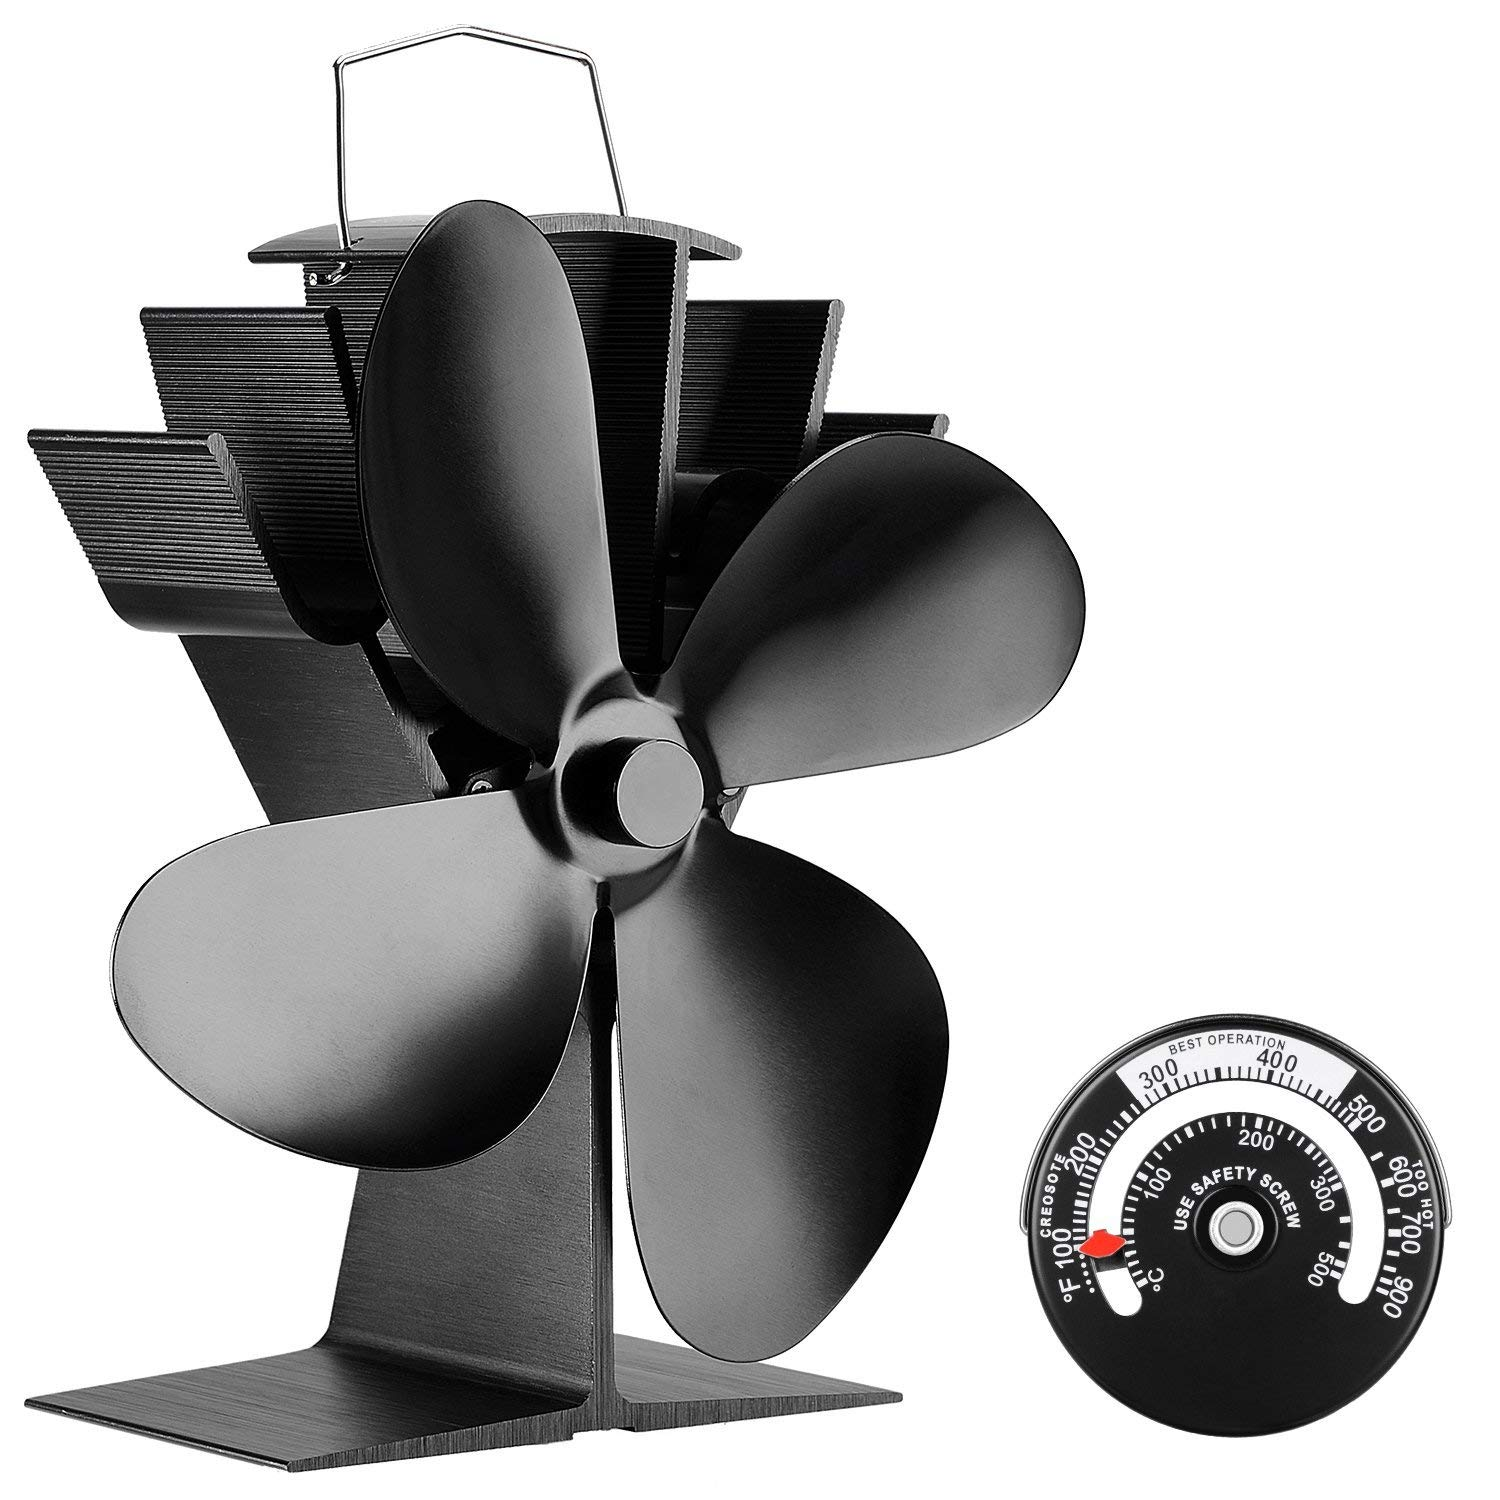 KINDEN Fireplace Fans 4-Blade - Heat Powered Stove Fan for Wood Log Burner Ultra Quiet Increases 80% More Warm Air Than 2 Blade Eco-Friendly with Stove Thermometer (Aluminium Black,Large Size) by KINDEN